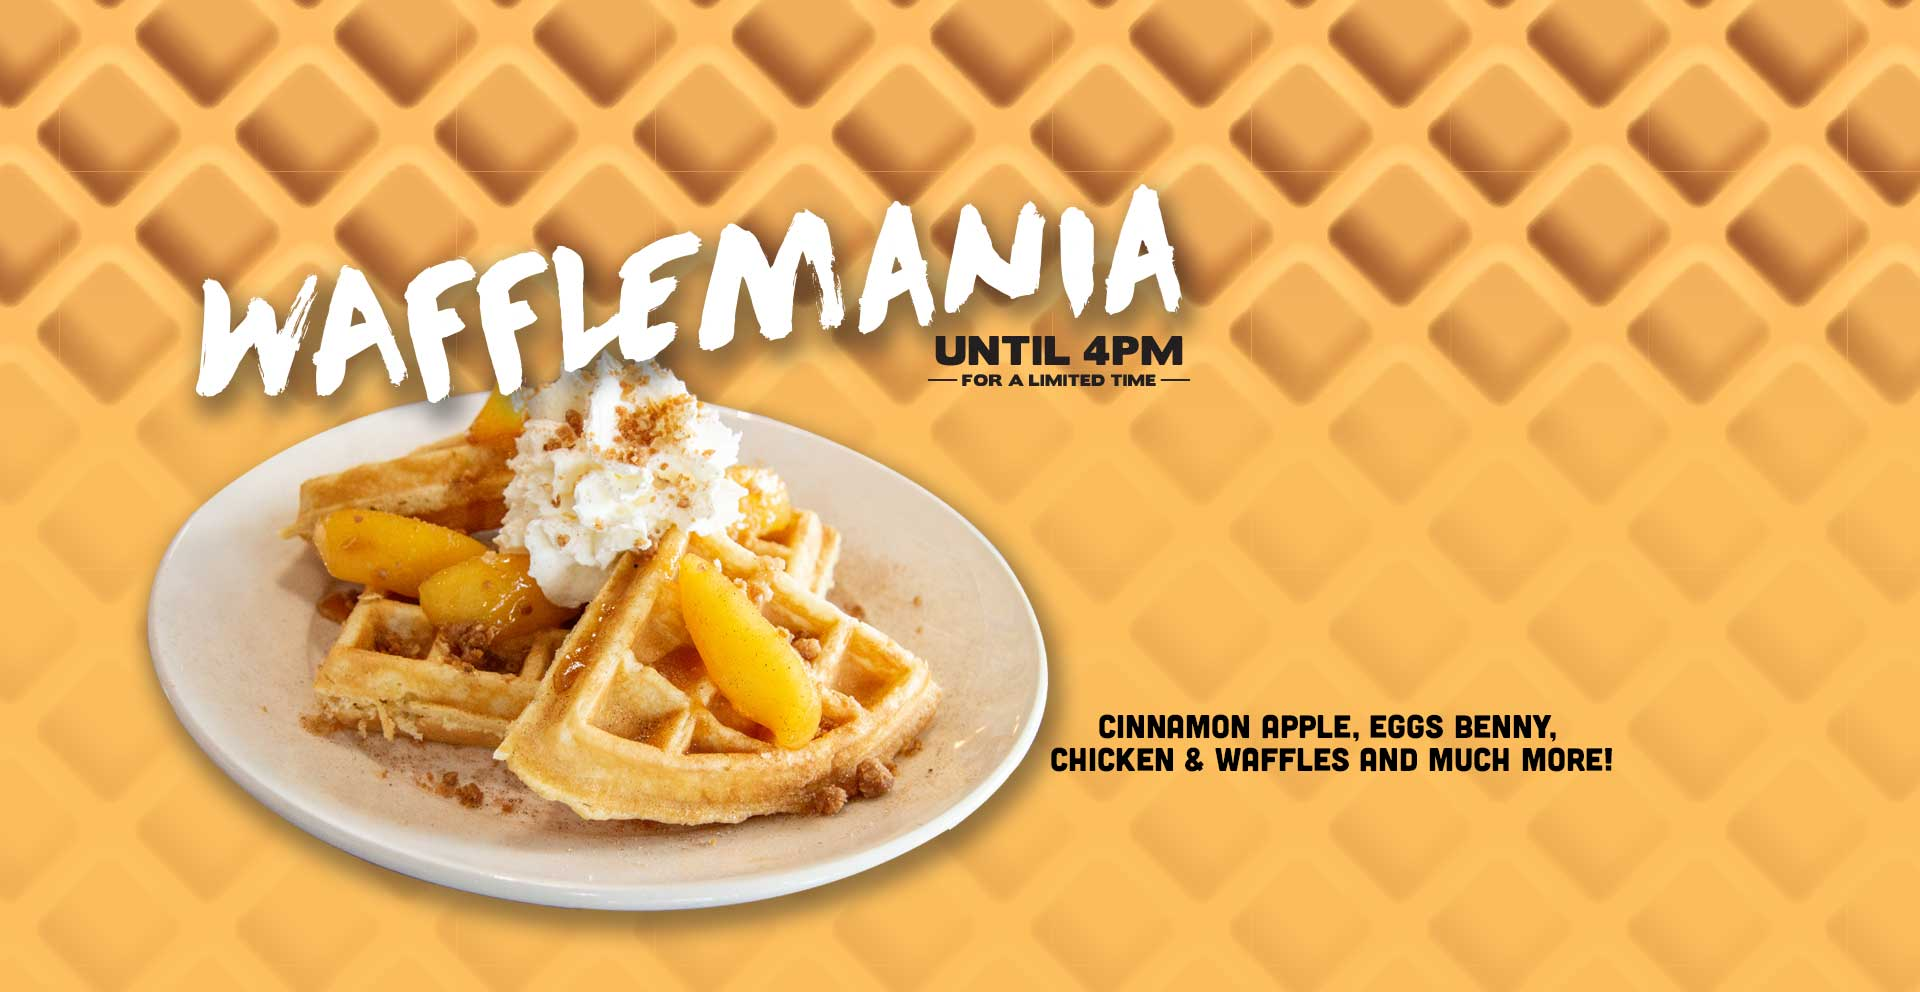 $1.00 from every Wafflemania menu item sold is donated to Breakfast Club of Canada. For a limited time at participating locations.